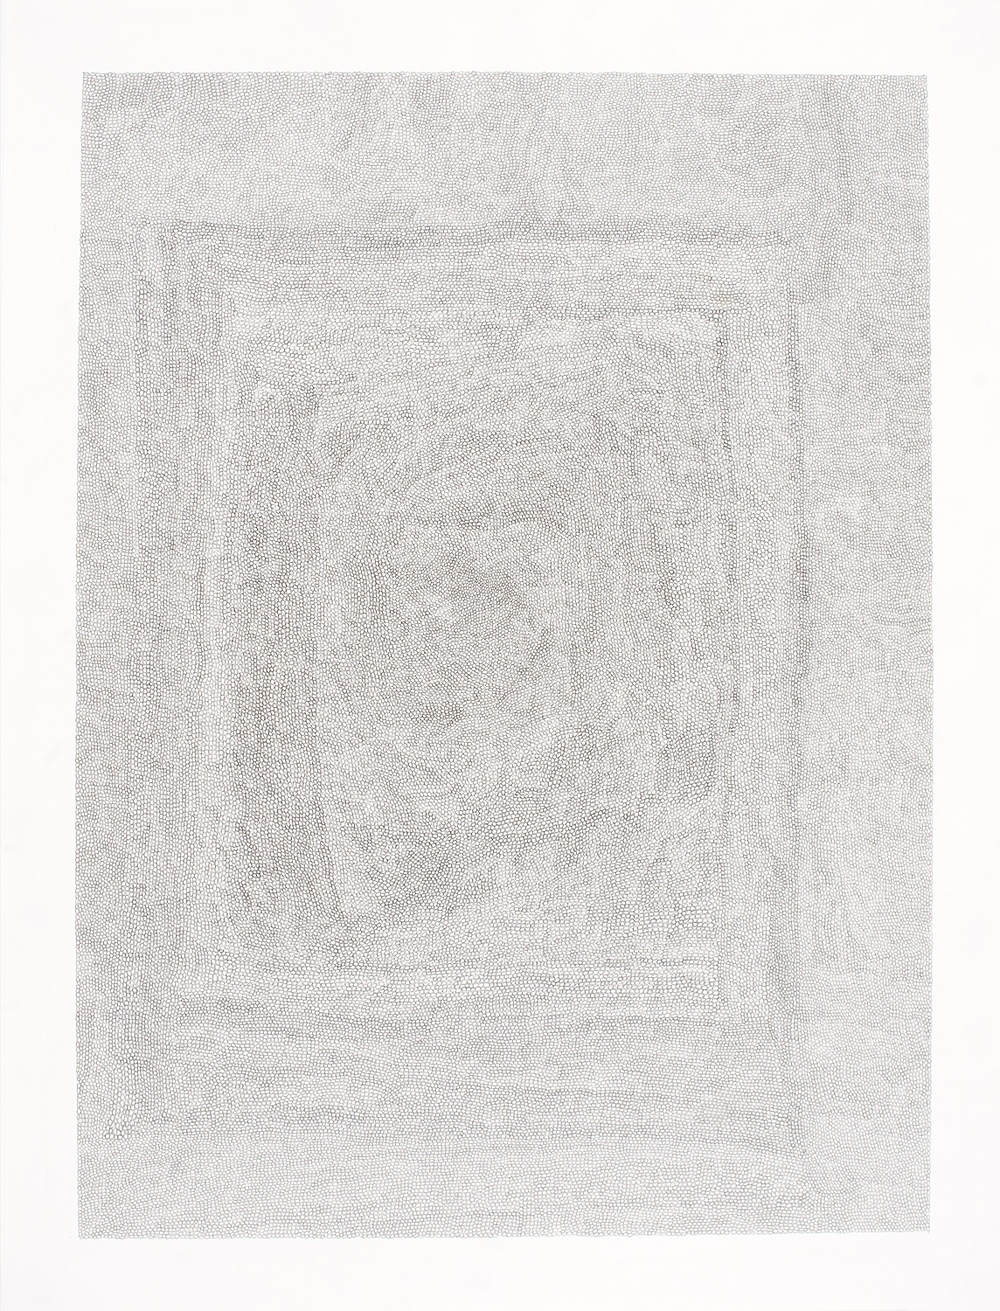 Circle Within Large Rectangle, 2007 50 by 38 inches Graphite on paper